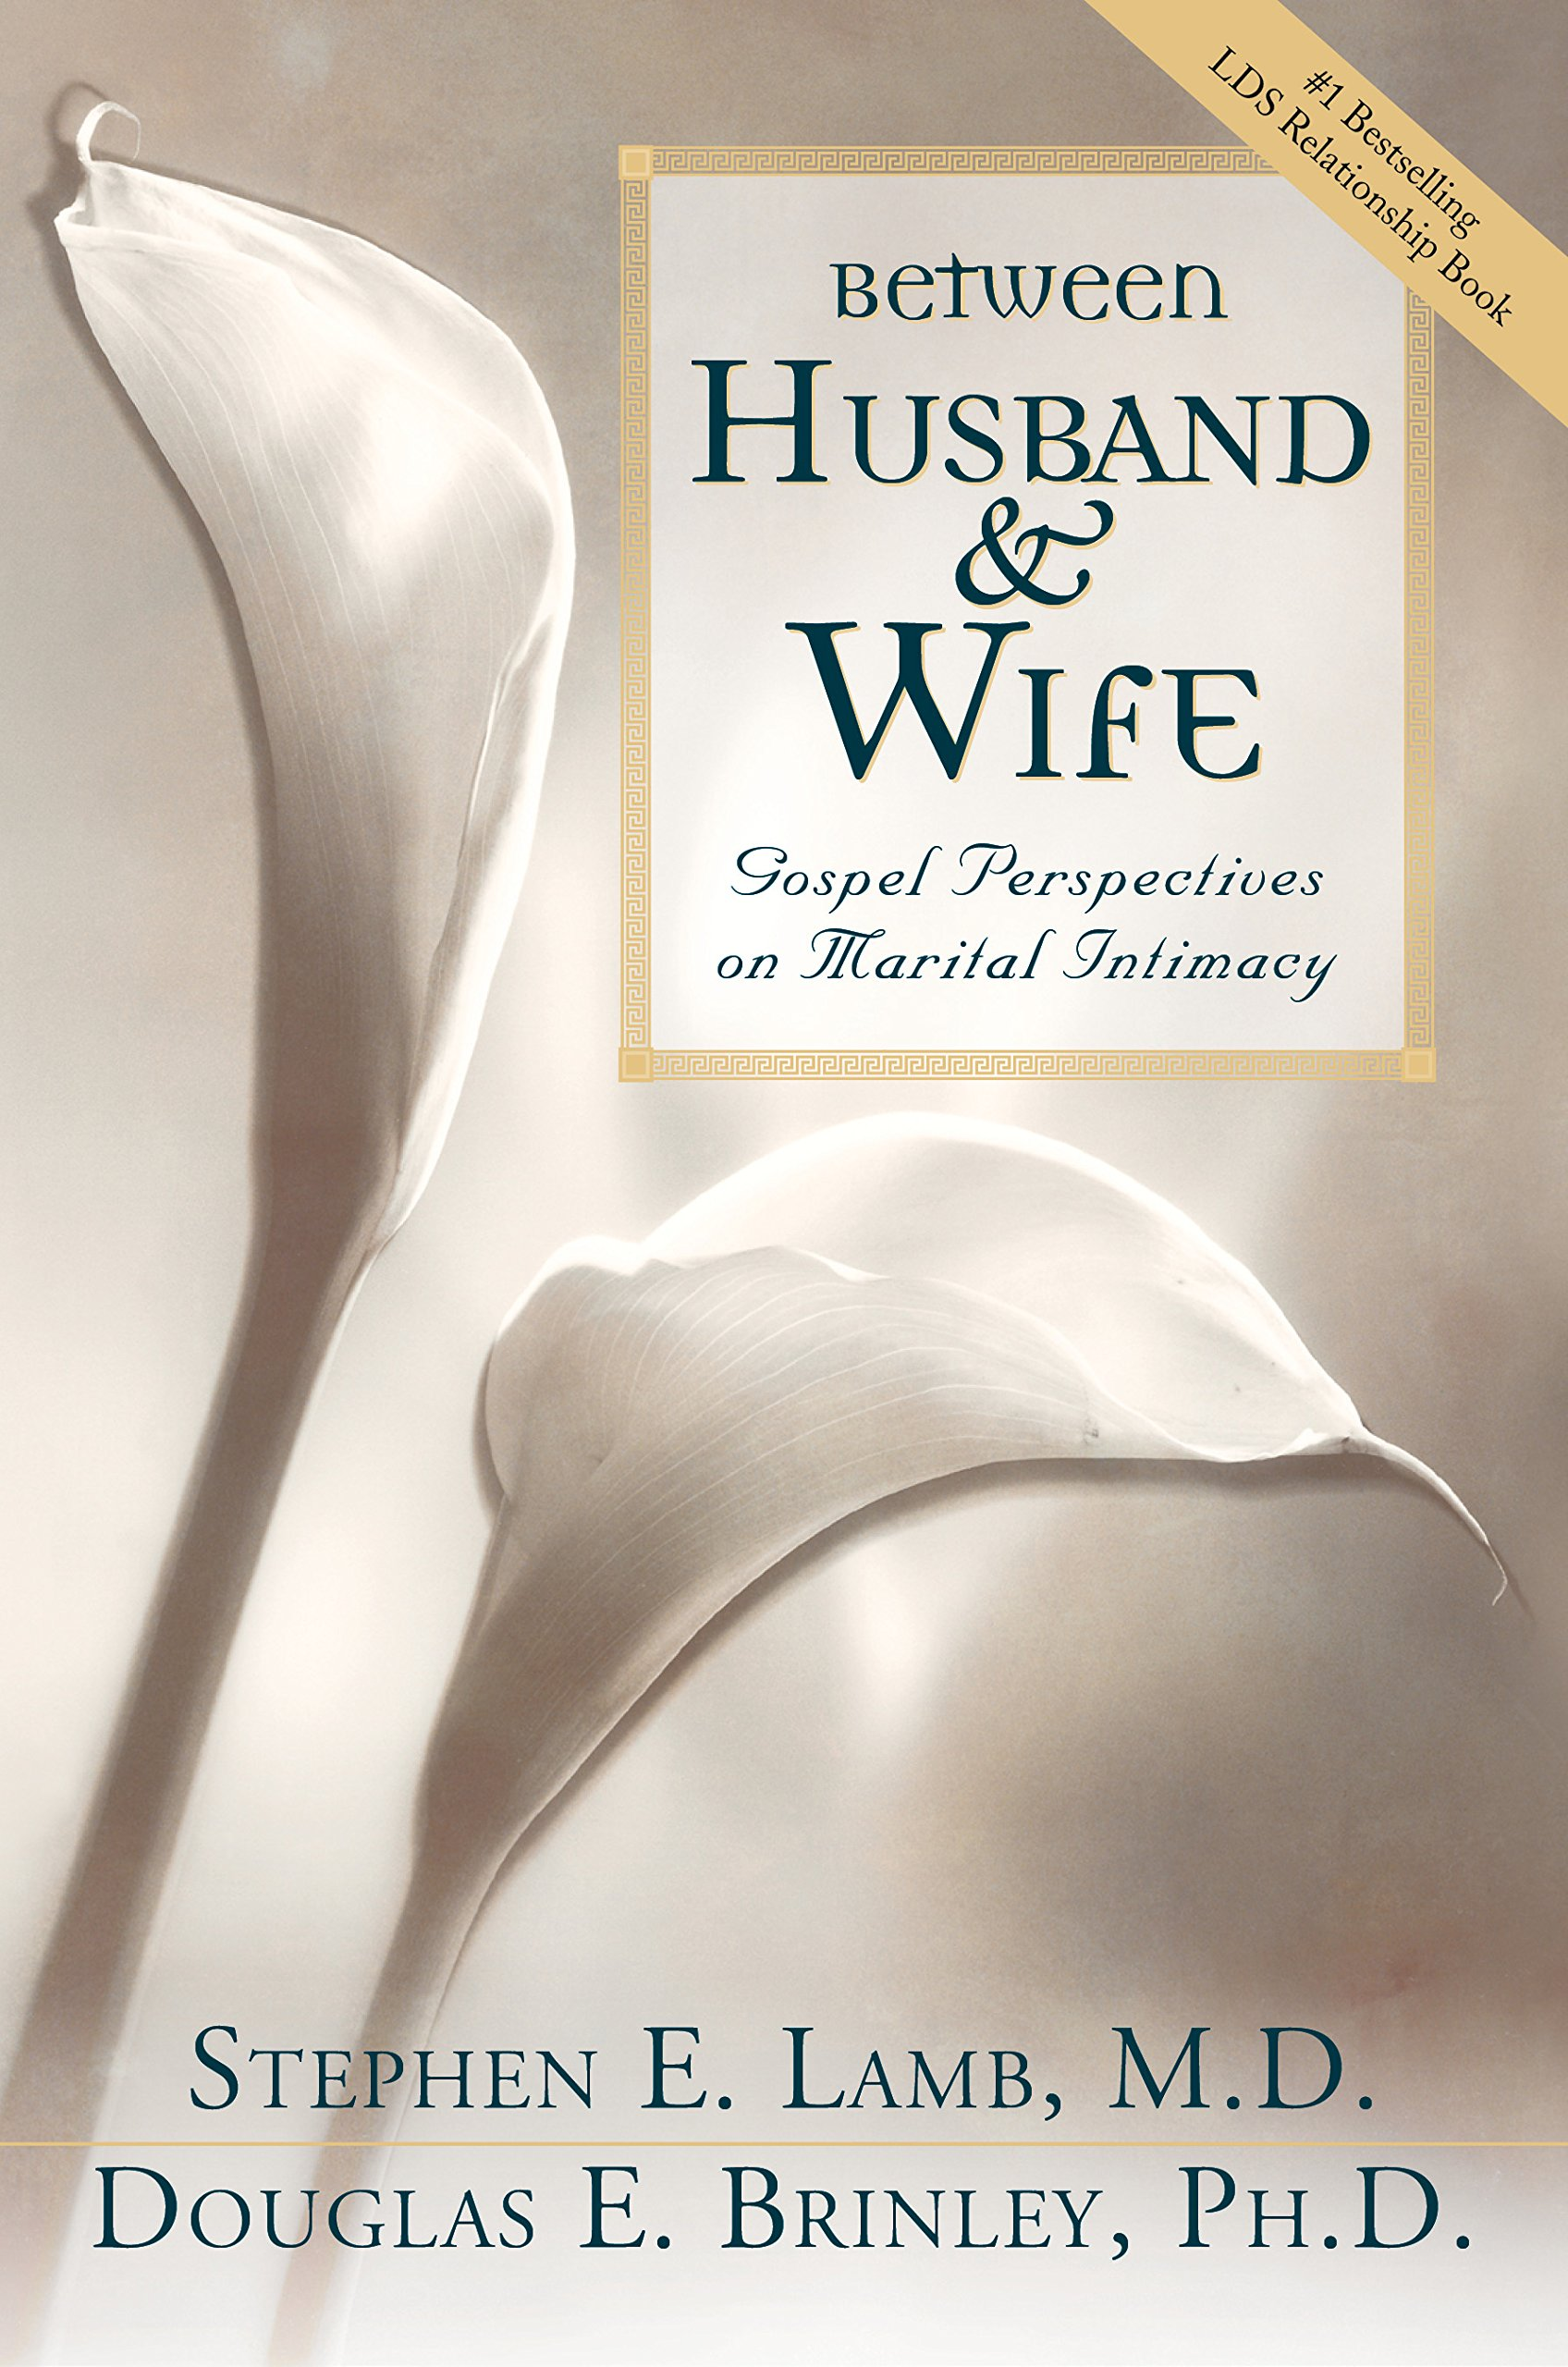 Image for BETWEEN HUSBAND AND WIFE -  Gospel Perspectives on Marital Intimacy